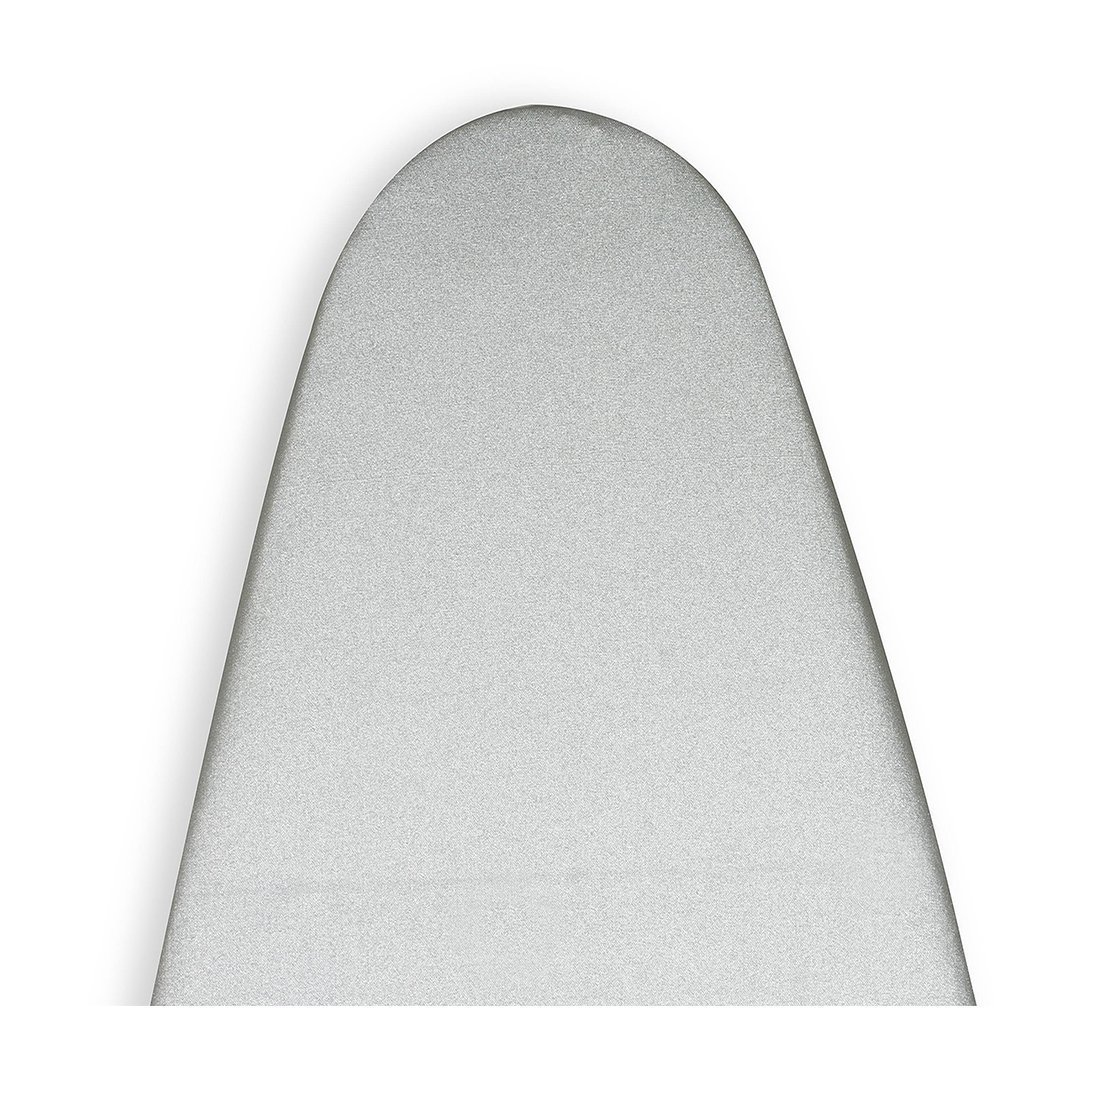 Encasa Homes Ironing Board Cover 'Silver Super Luxury' with Foam & Felt PAD (Fits Wide Board 18''x49'')